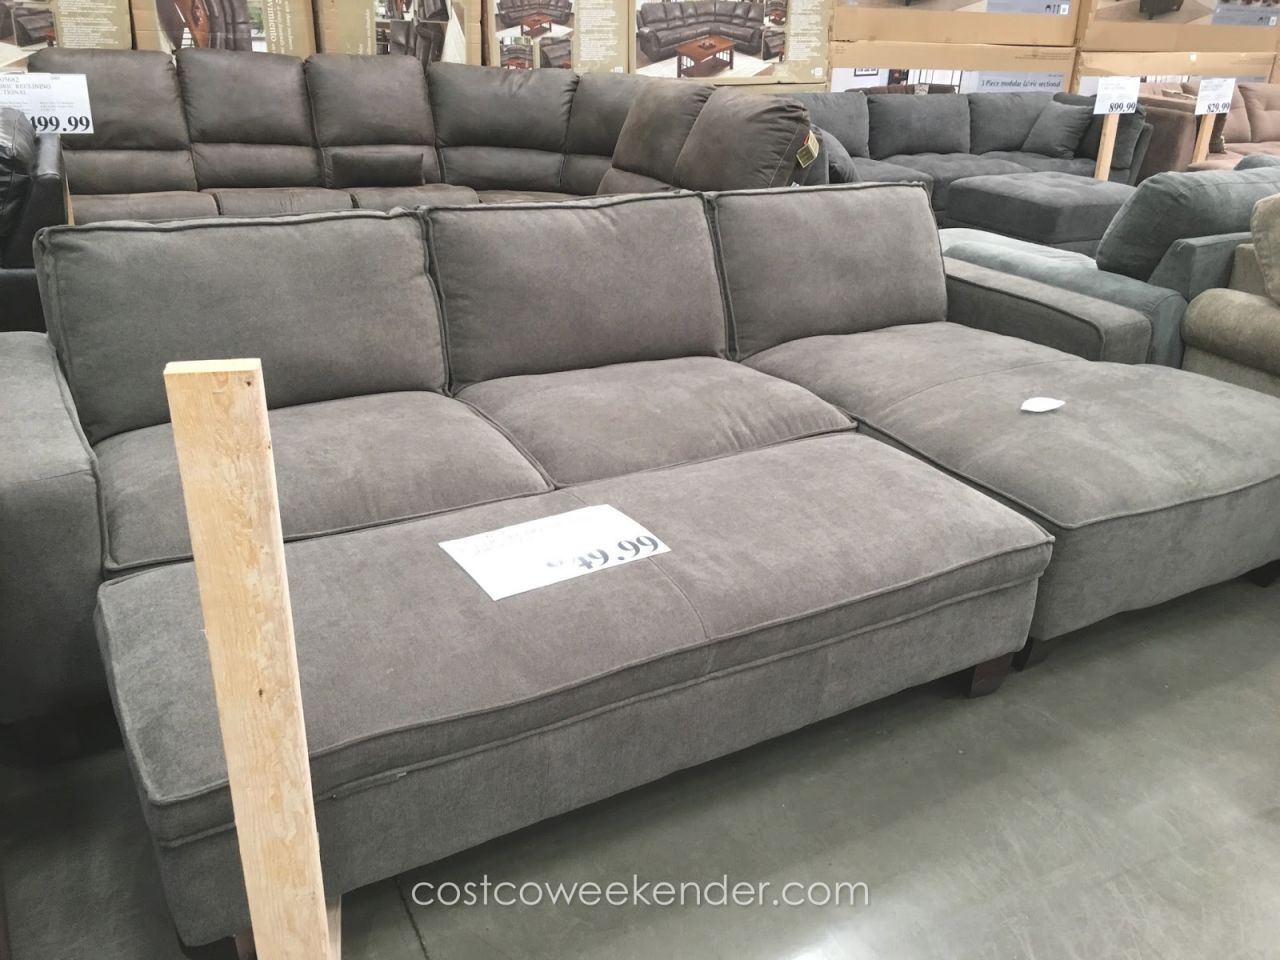 engaging sofa bed costco reddit full scenic feather leather intended for lovely costco living room furniture